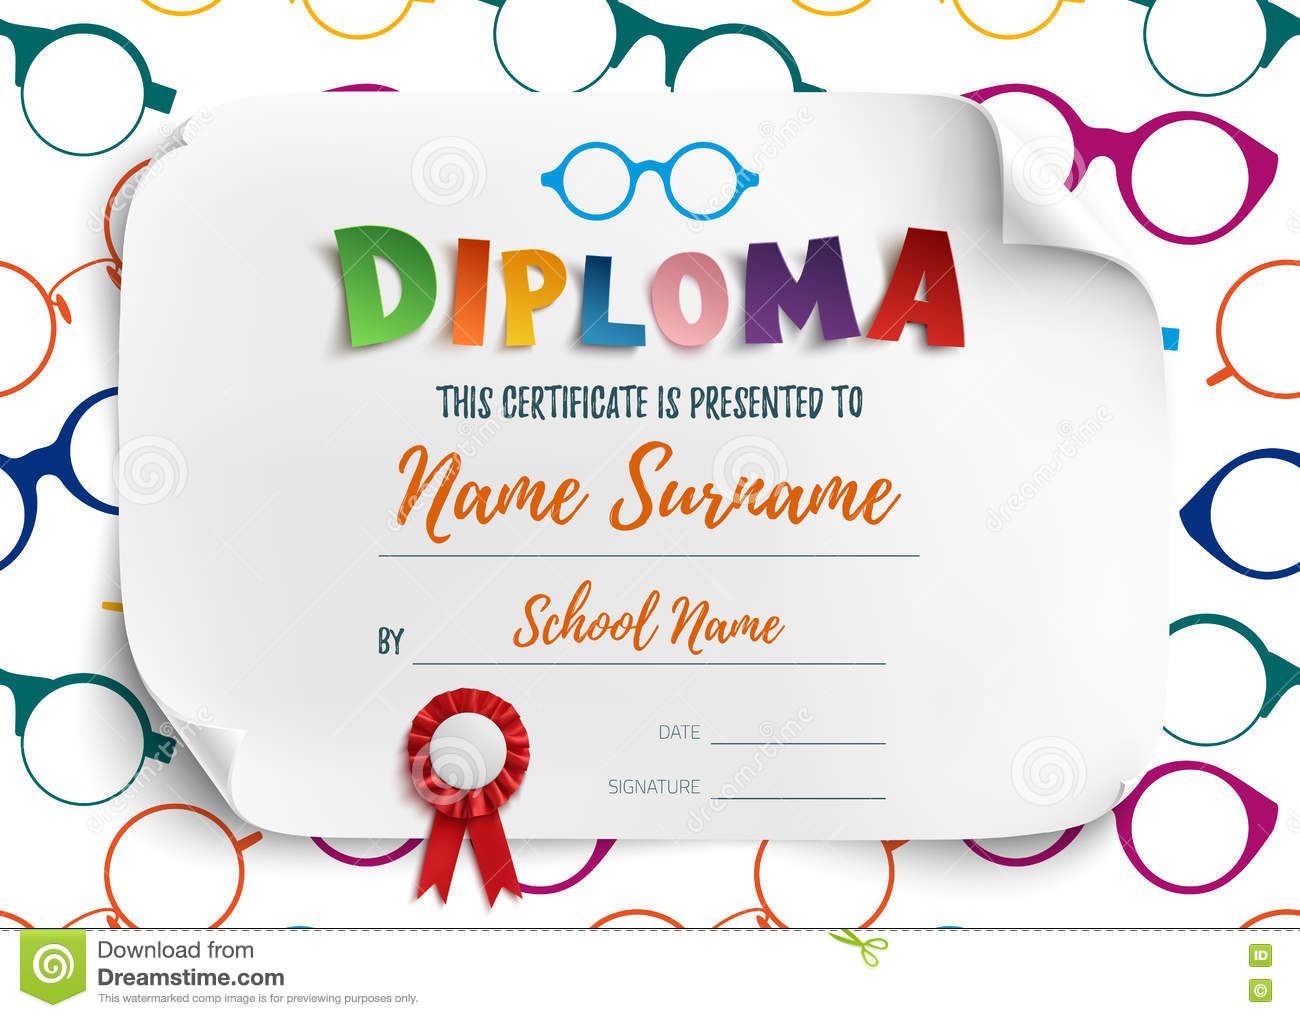 Diploma template for children stock vector illustration 74995245 diploma template for children alramifo Images